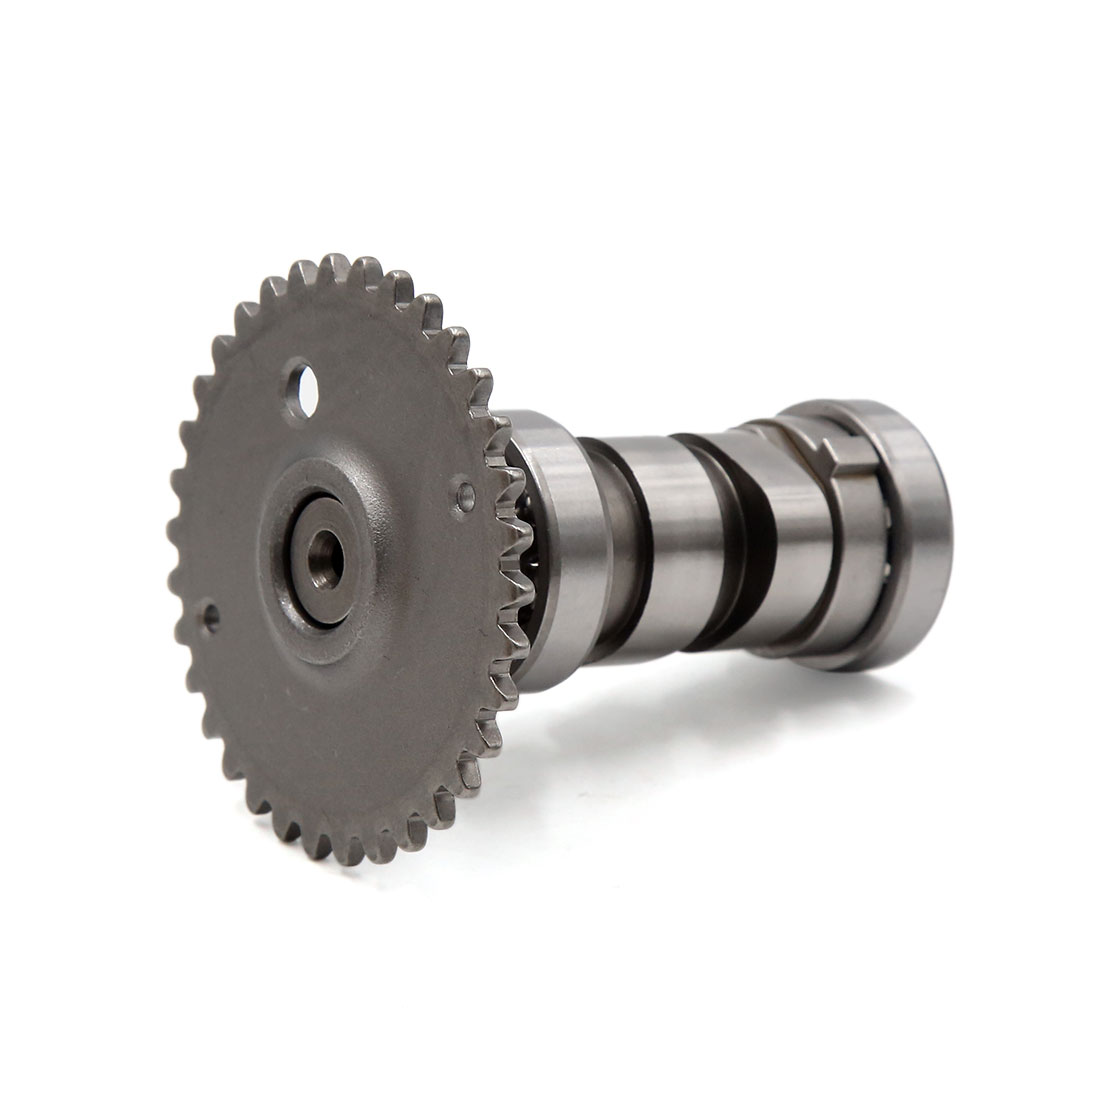 Steel Motorcycle Scooter Timing Gear Intake Exhaust Cam Camshaft for Honda WH125 - image 4 of 4